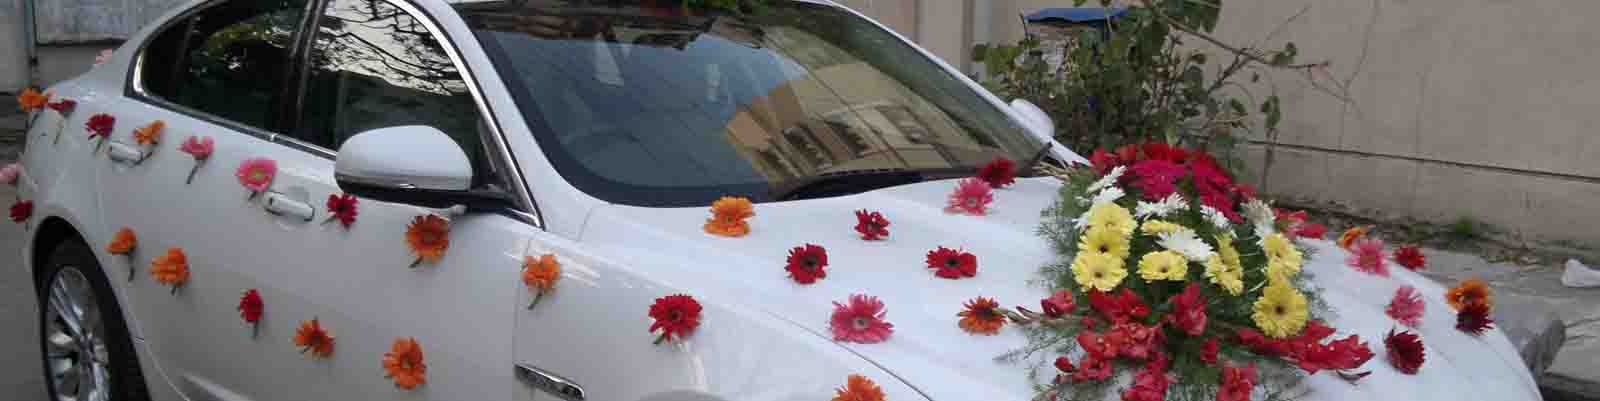 wedding car rentals in kothamangalam